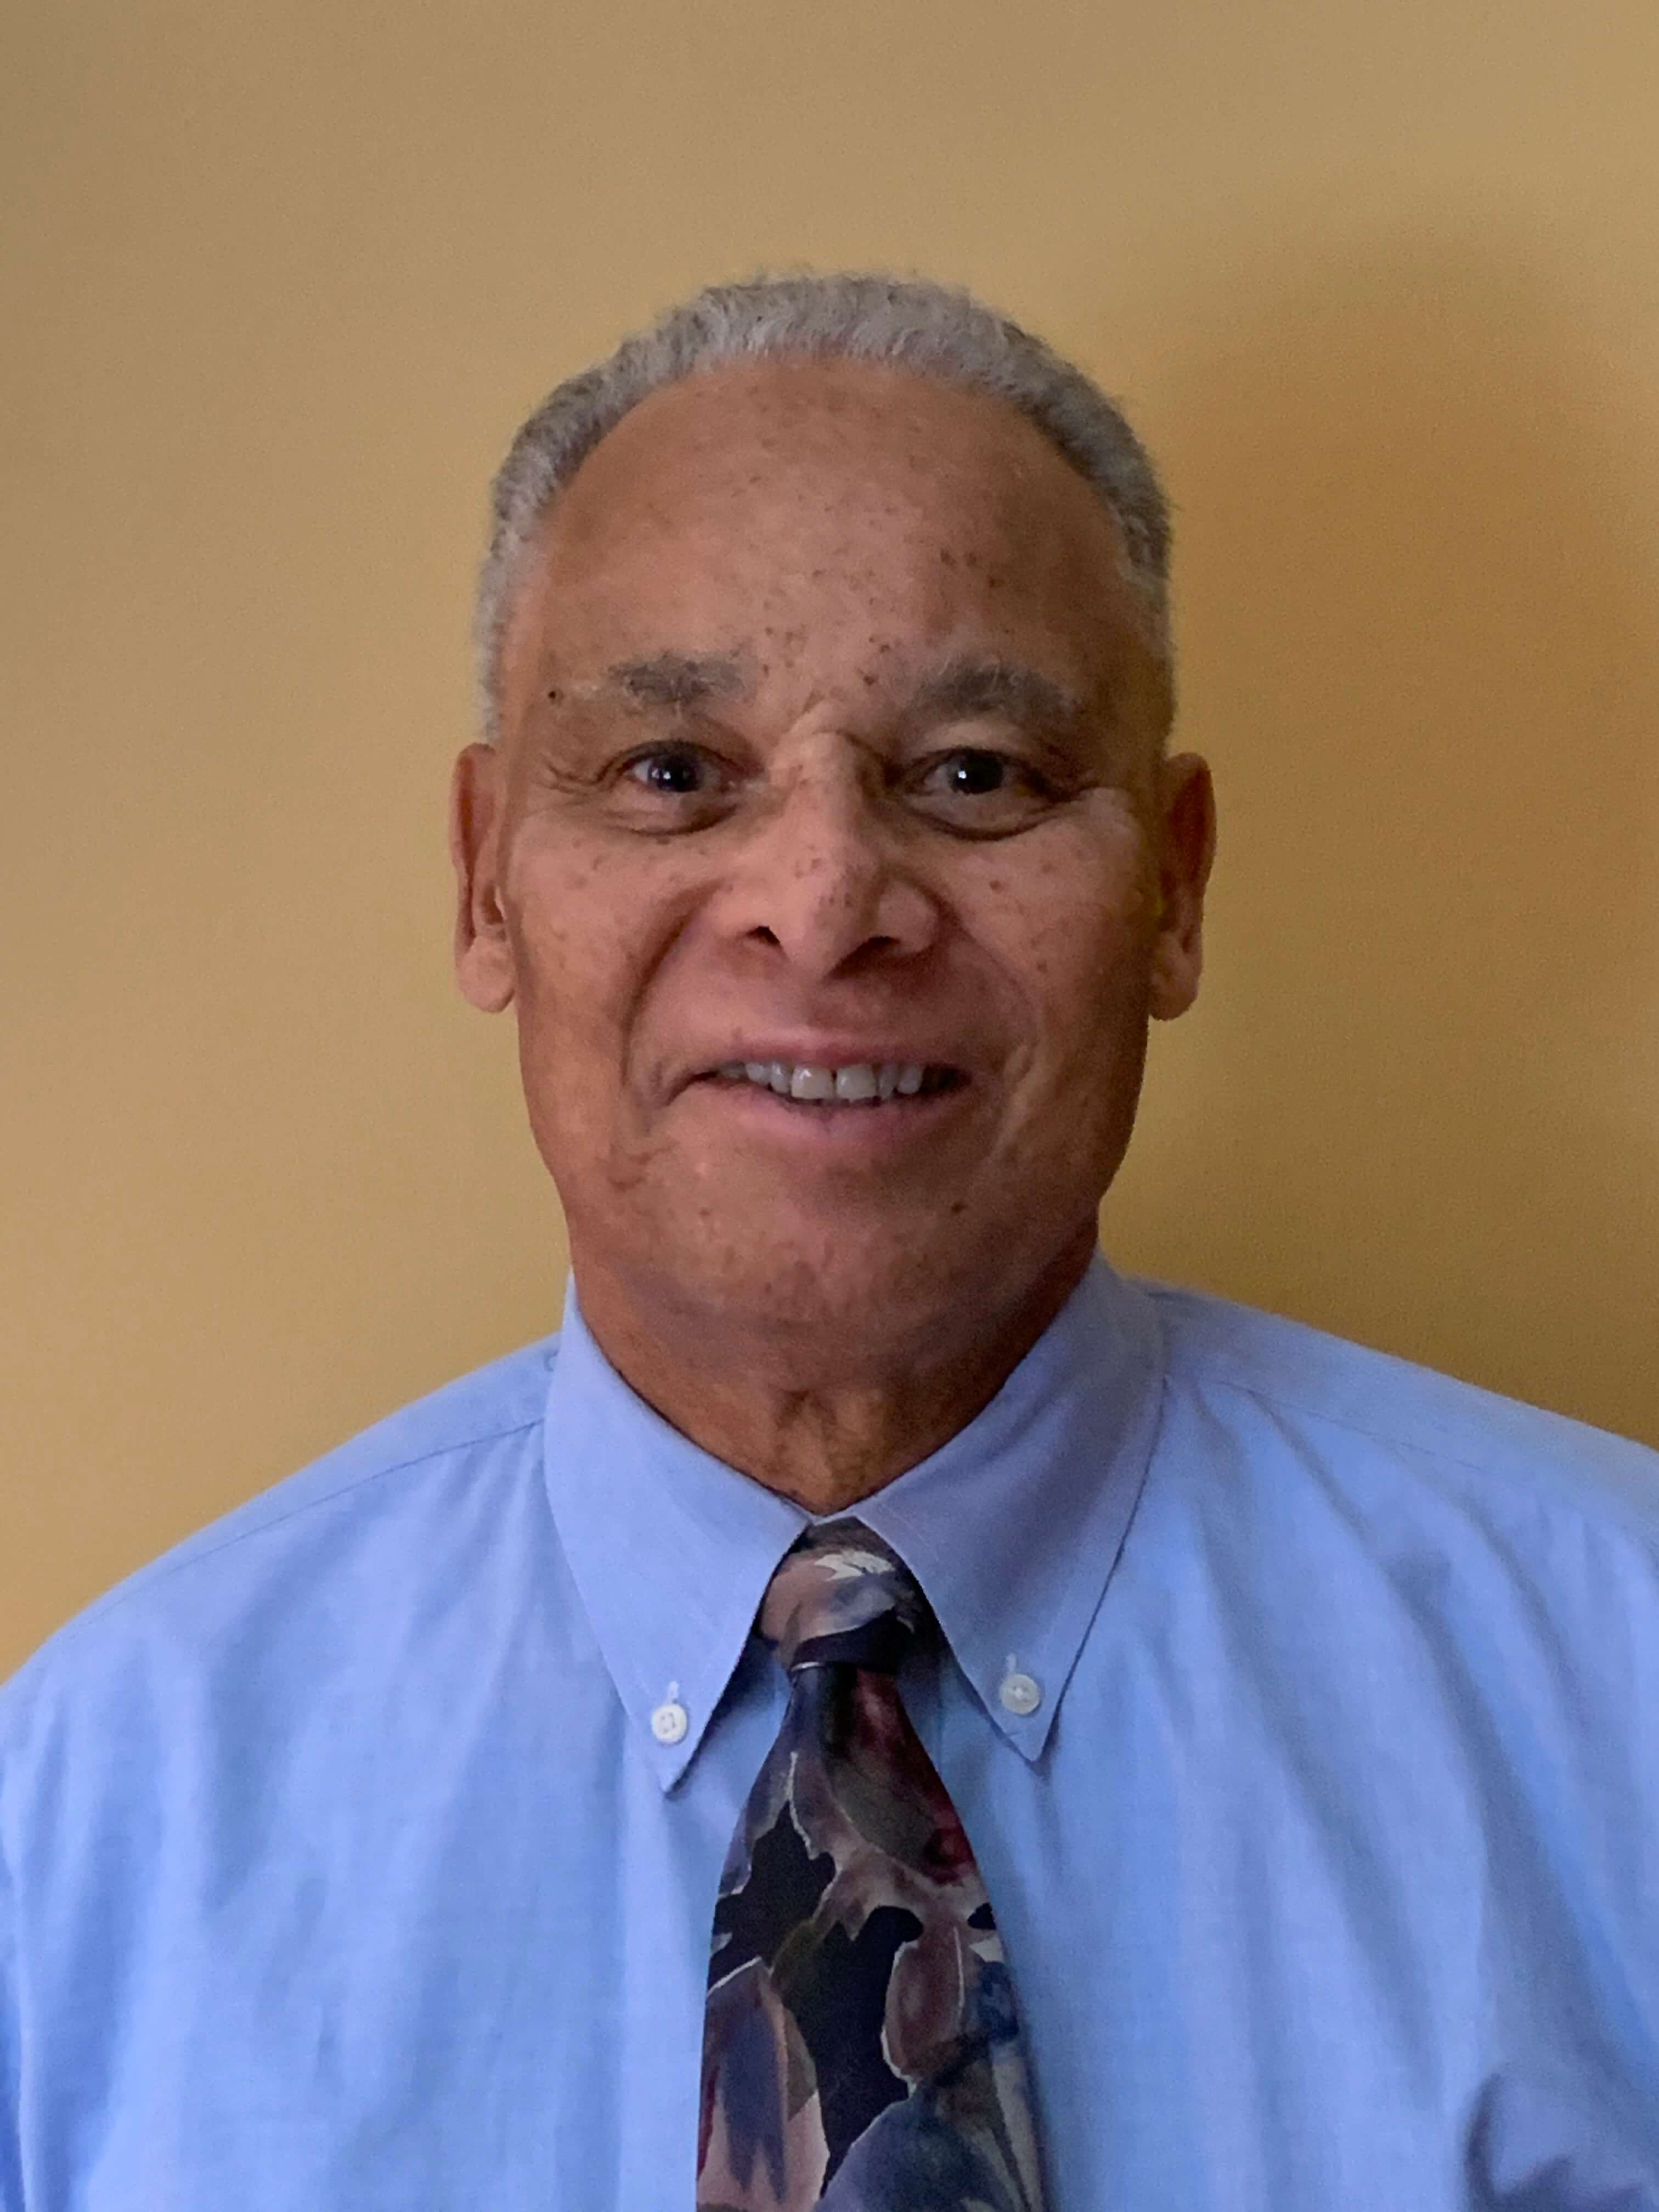 Ed Wright is a 1971 graduate of Lock Haven State College and a former president of the Lock Haven University Alumni Association.